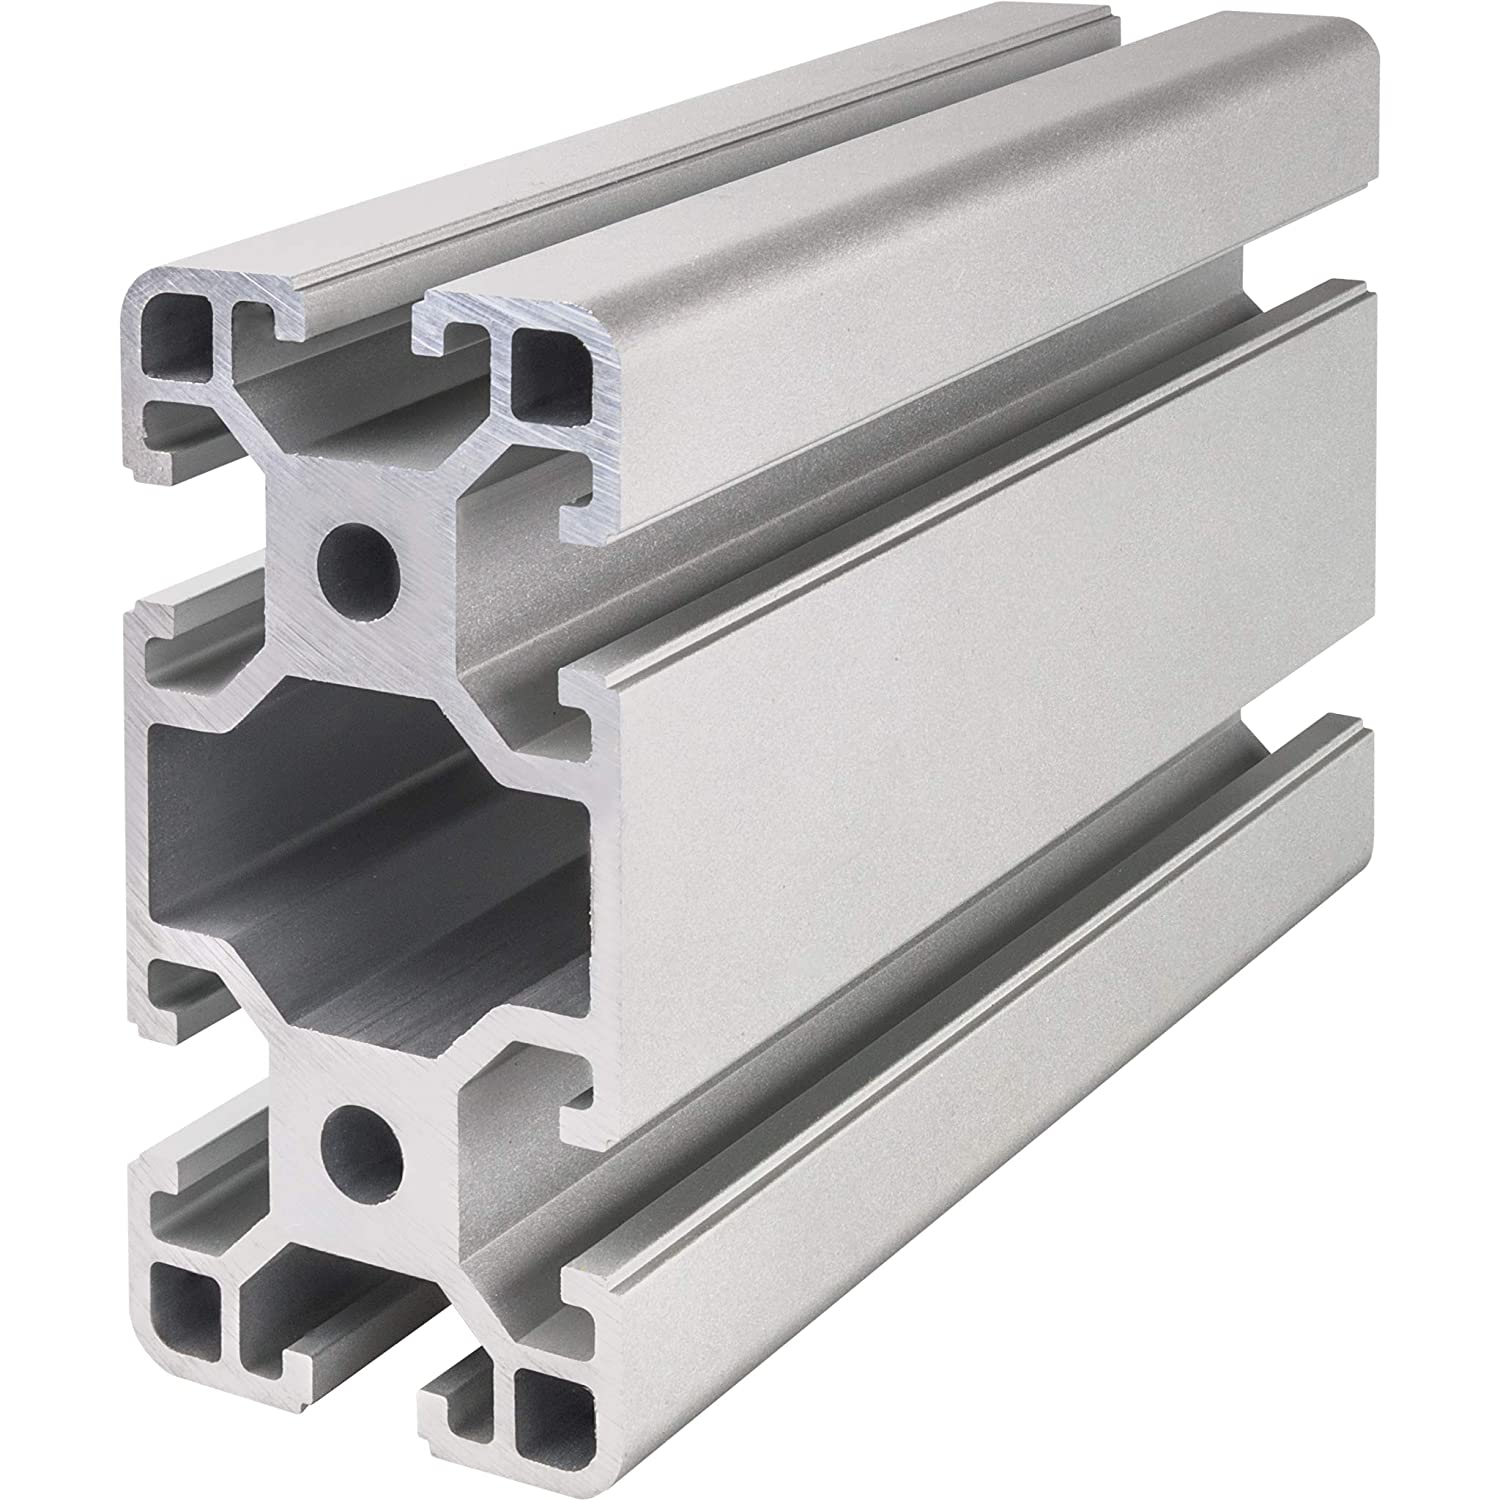 Aluminium Extrusion Profile 4080 T-Slot 8 mm (1500 mm) LED-Glass